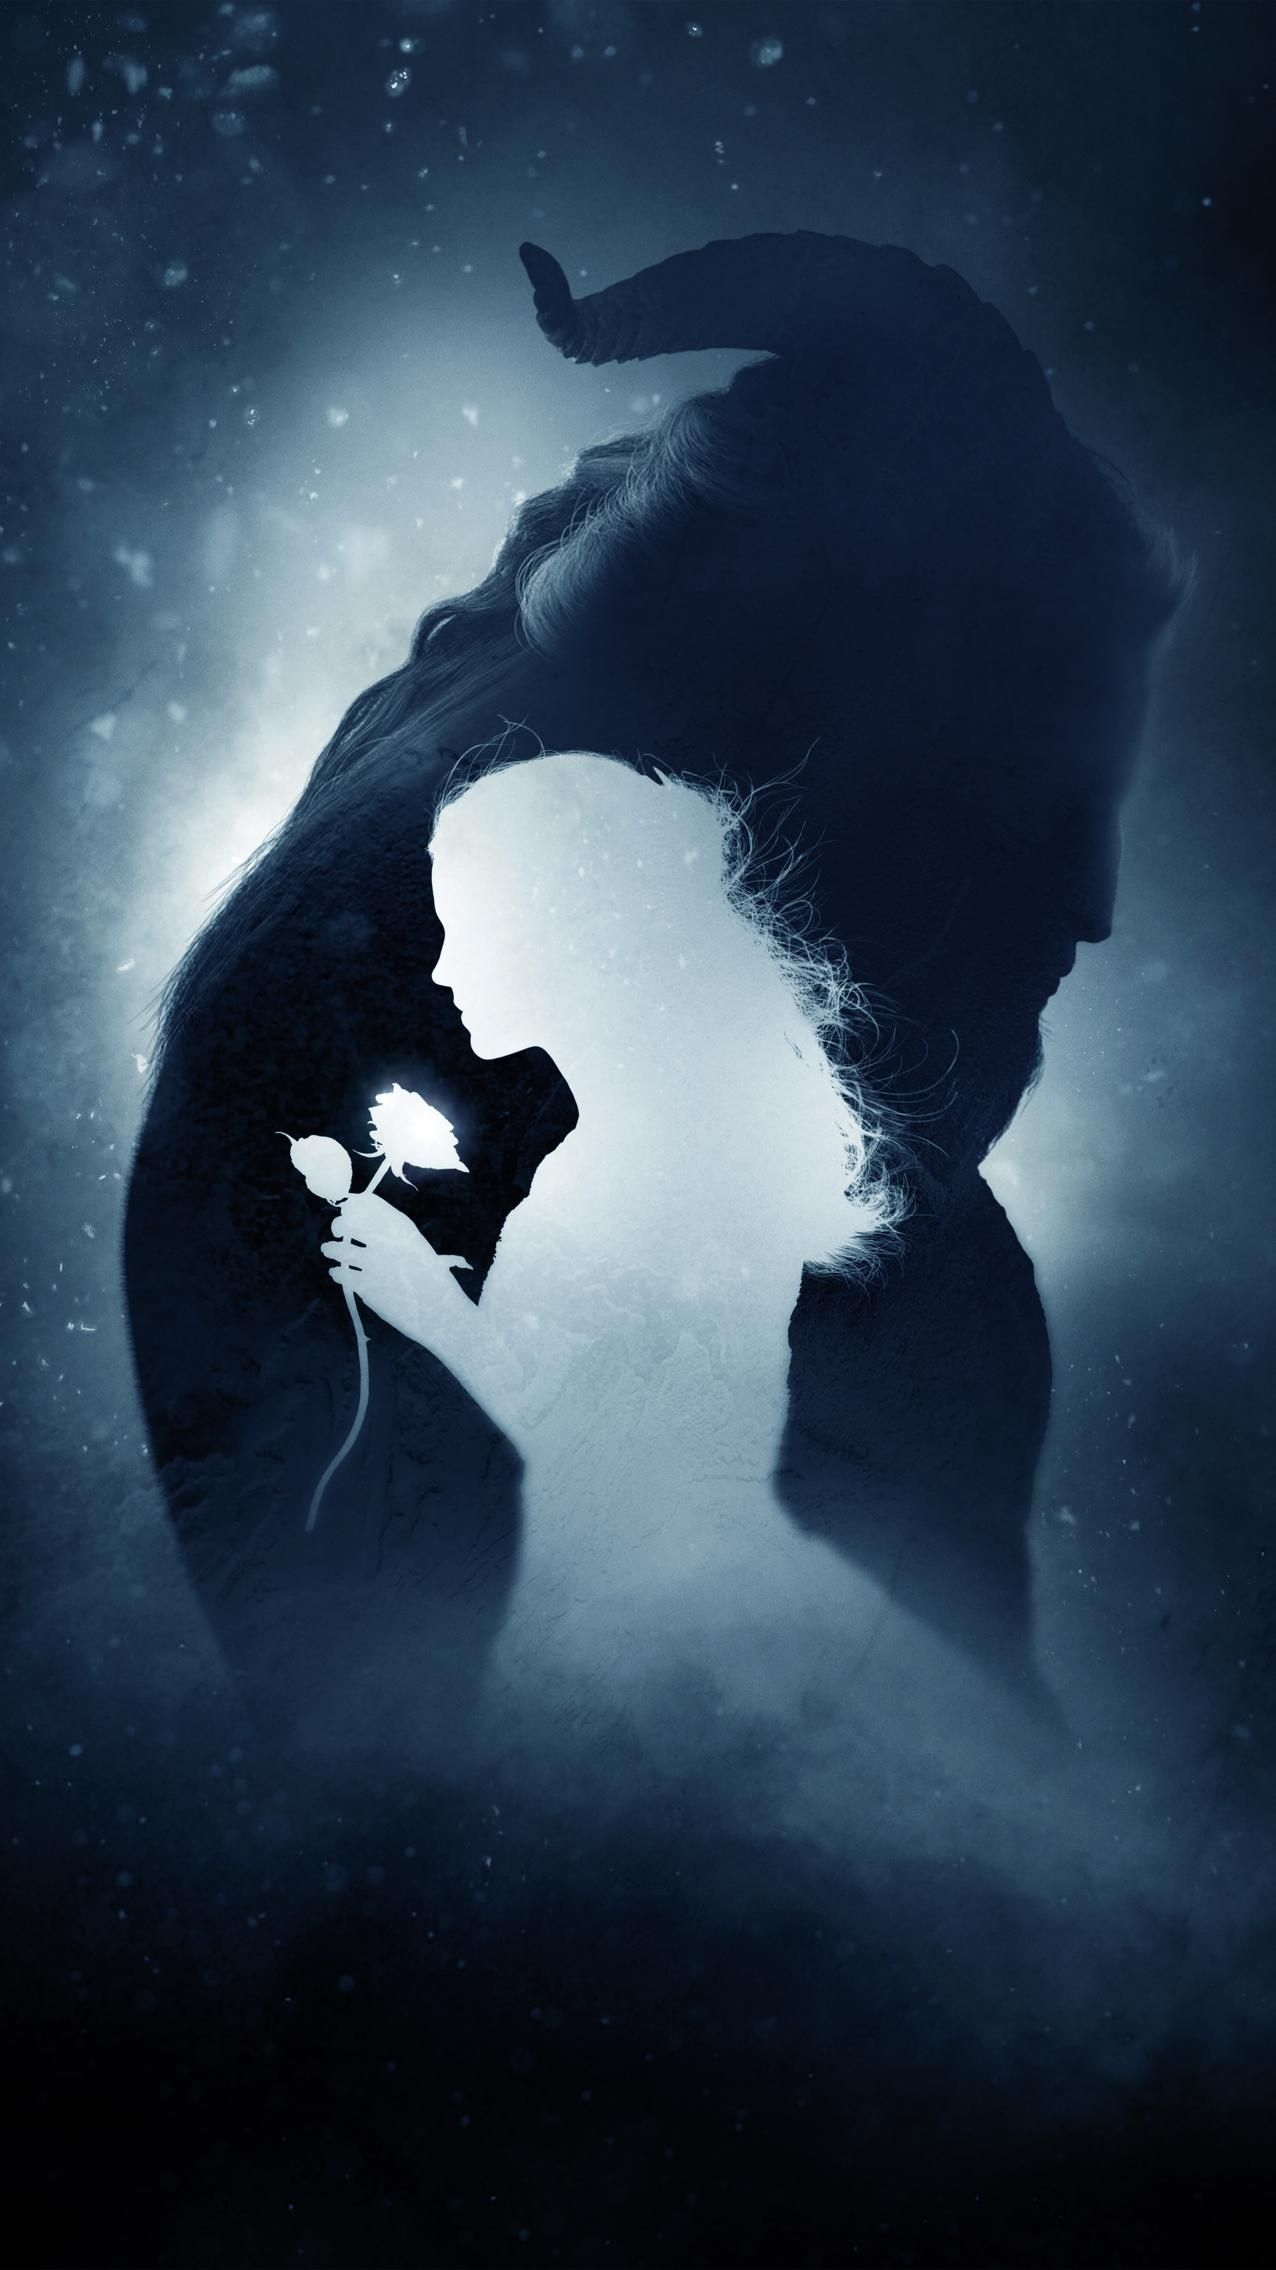 Beauty And The Beast 2017 Phone Wallpaper In 2020 Beast